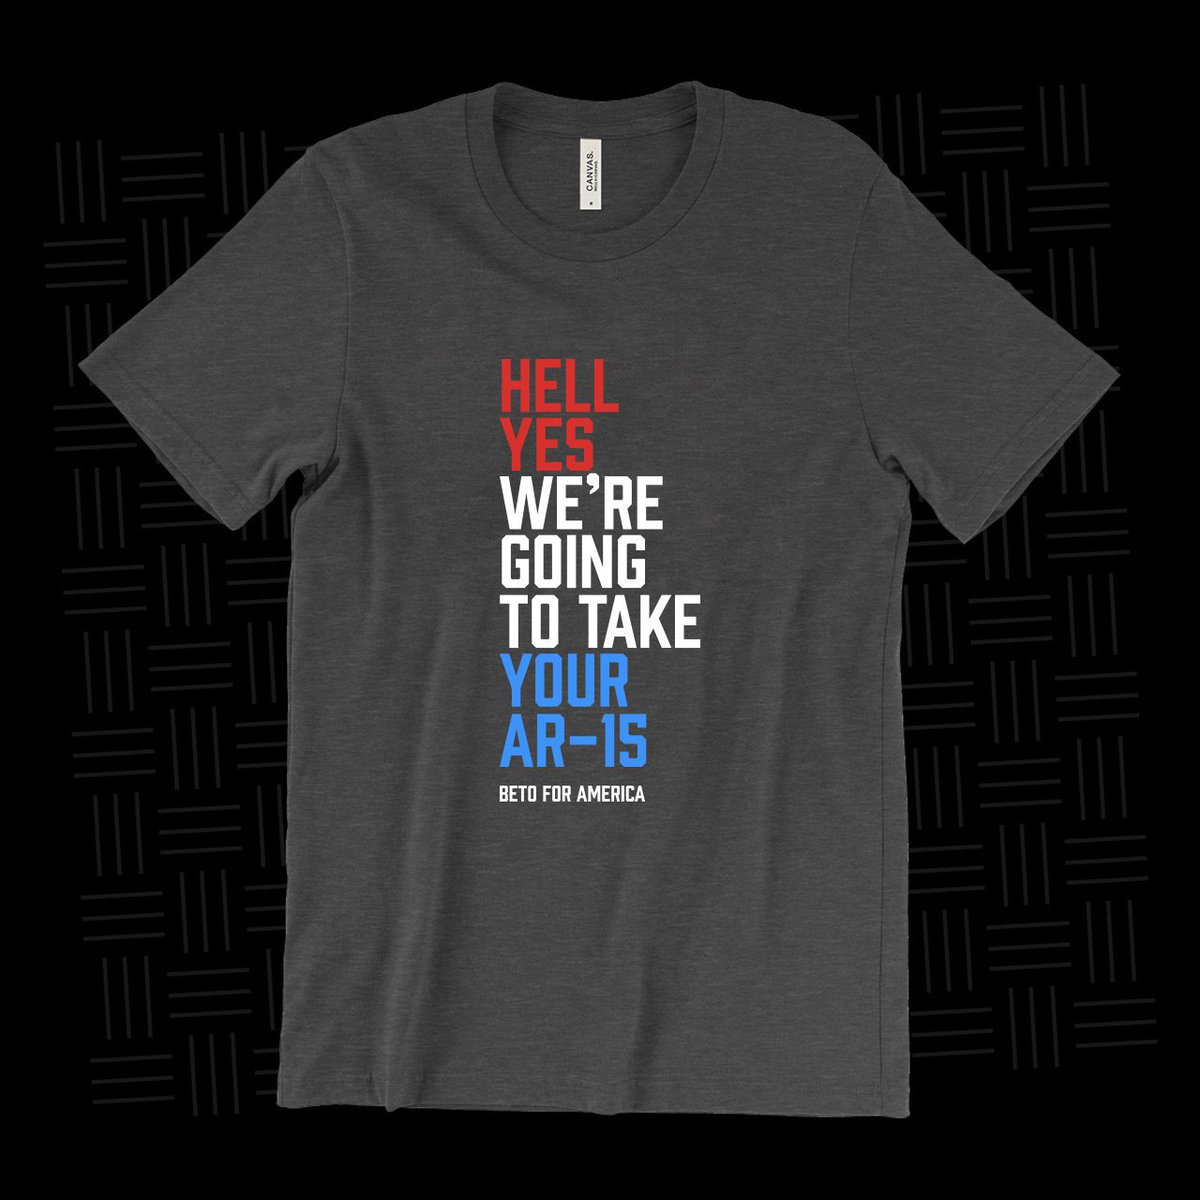 Hell yes, we're going to take your AR-15. Buy your shirt now: store.betoorourke.com/hell-yes-were-…